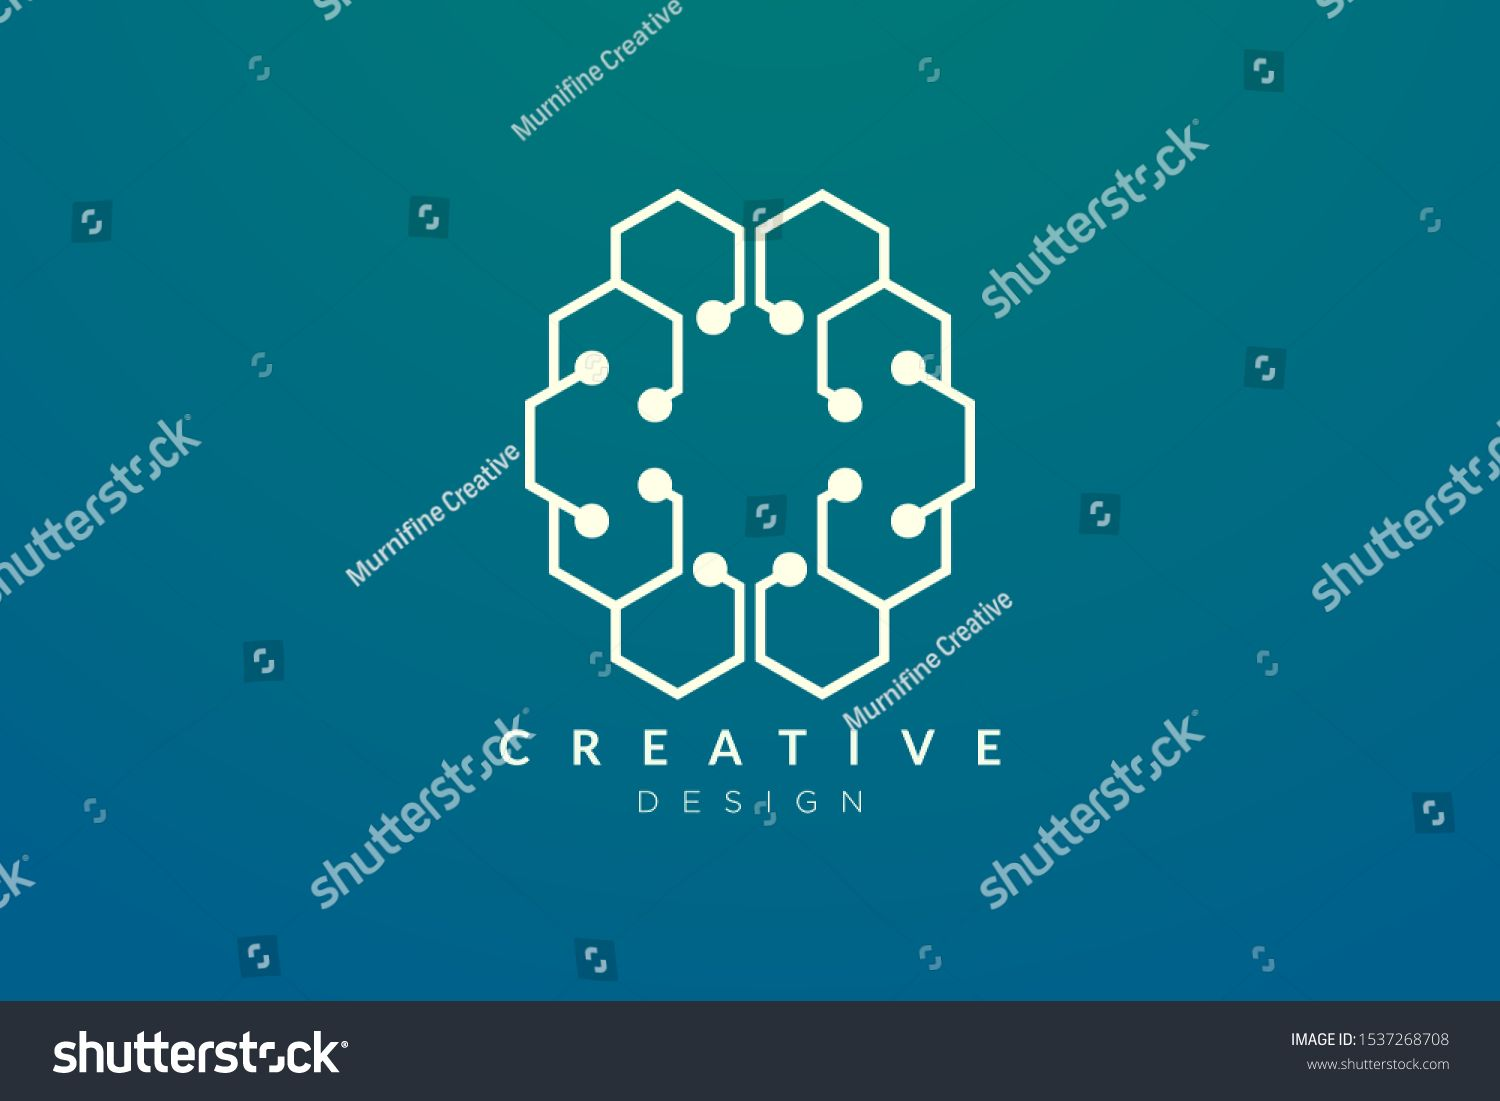 Design Abstract Brain Shape Logo With Technology Style Simple And Modern Vector Design For Business Brand In The Field Of D Brain Shape Abstract Vector Design